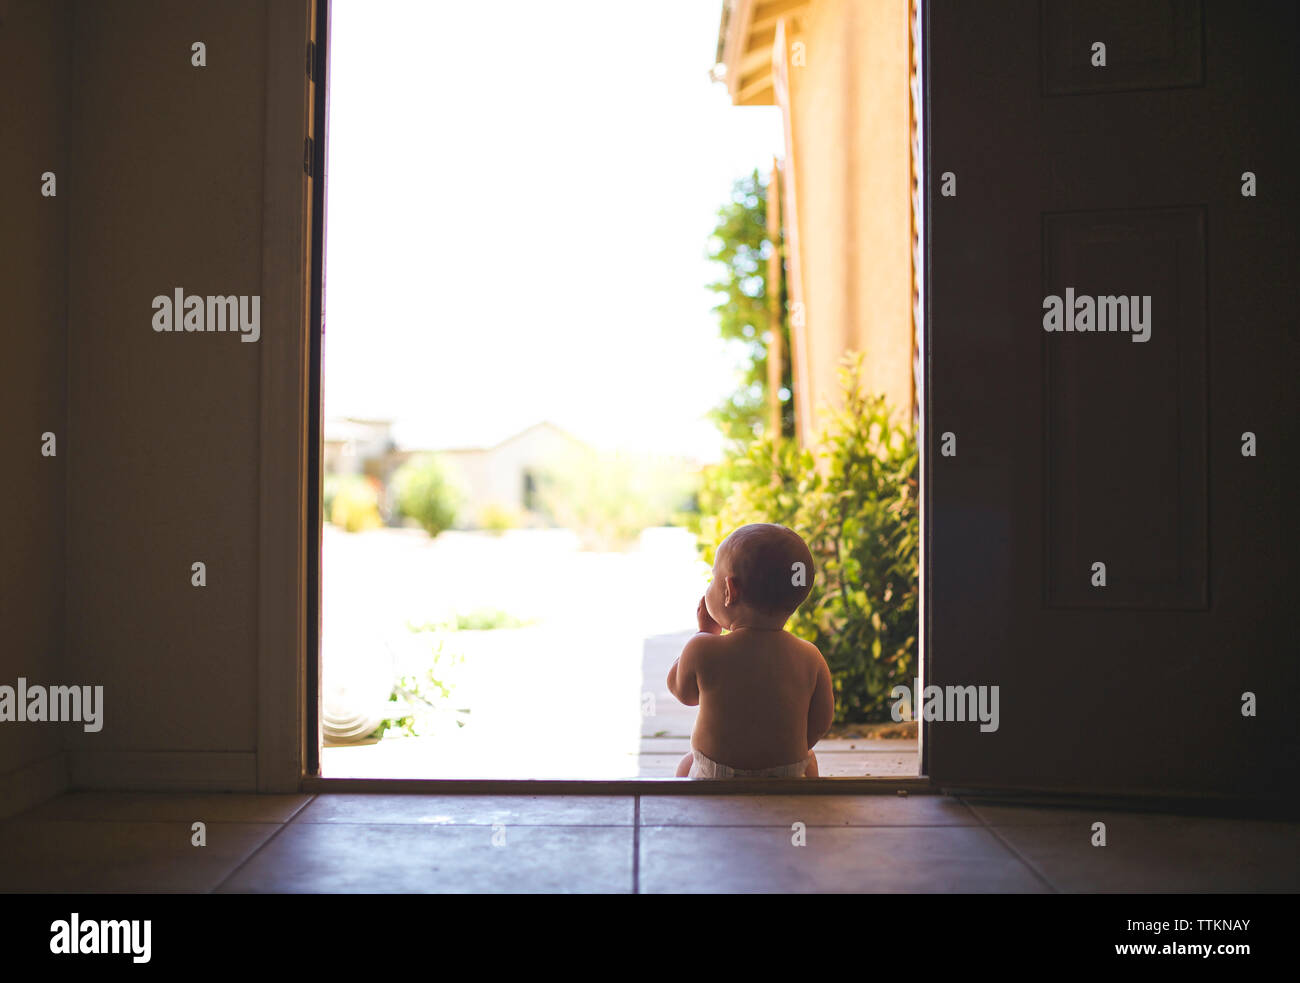 Rear view of baby sitting on doorway during sunny day - Stock Image